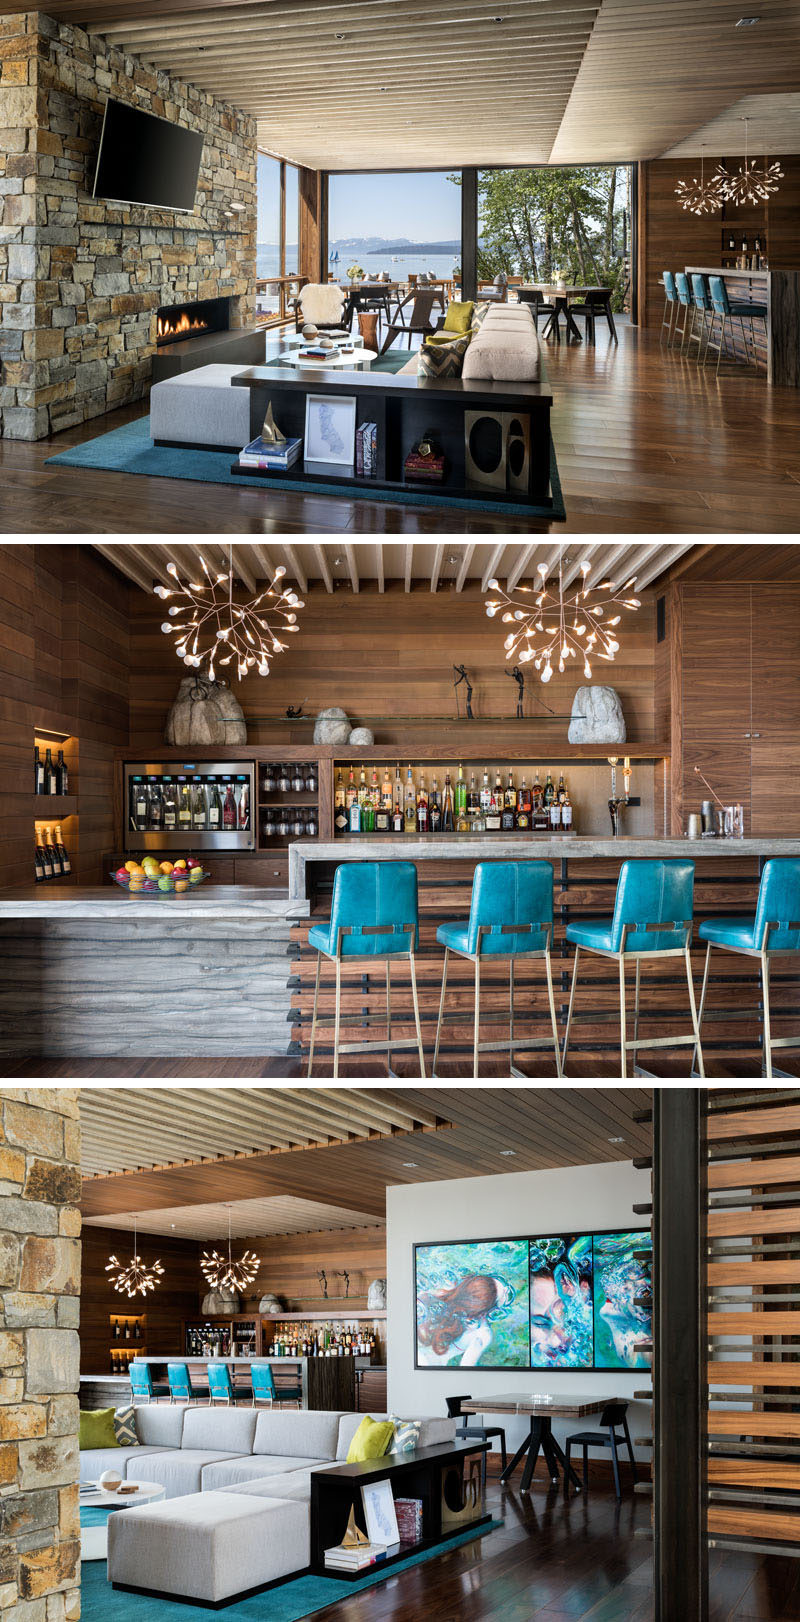 This lakeside club house features an indoor gathering area with a lounge focused on a fireplace, dining tables and a wood covered bar,